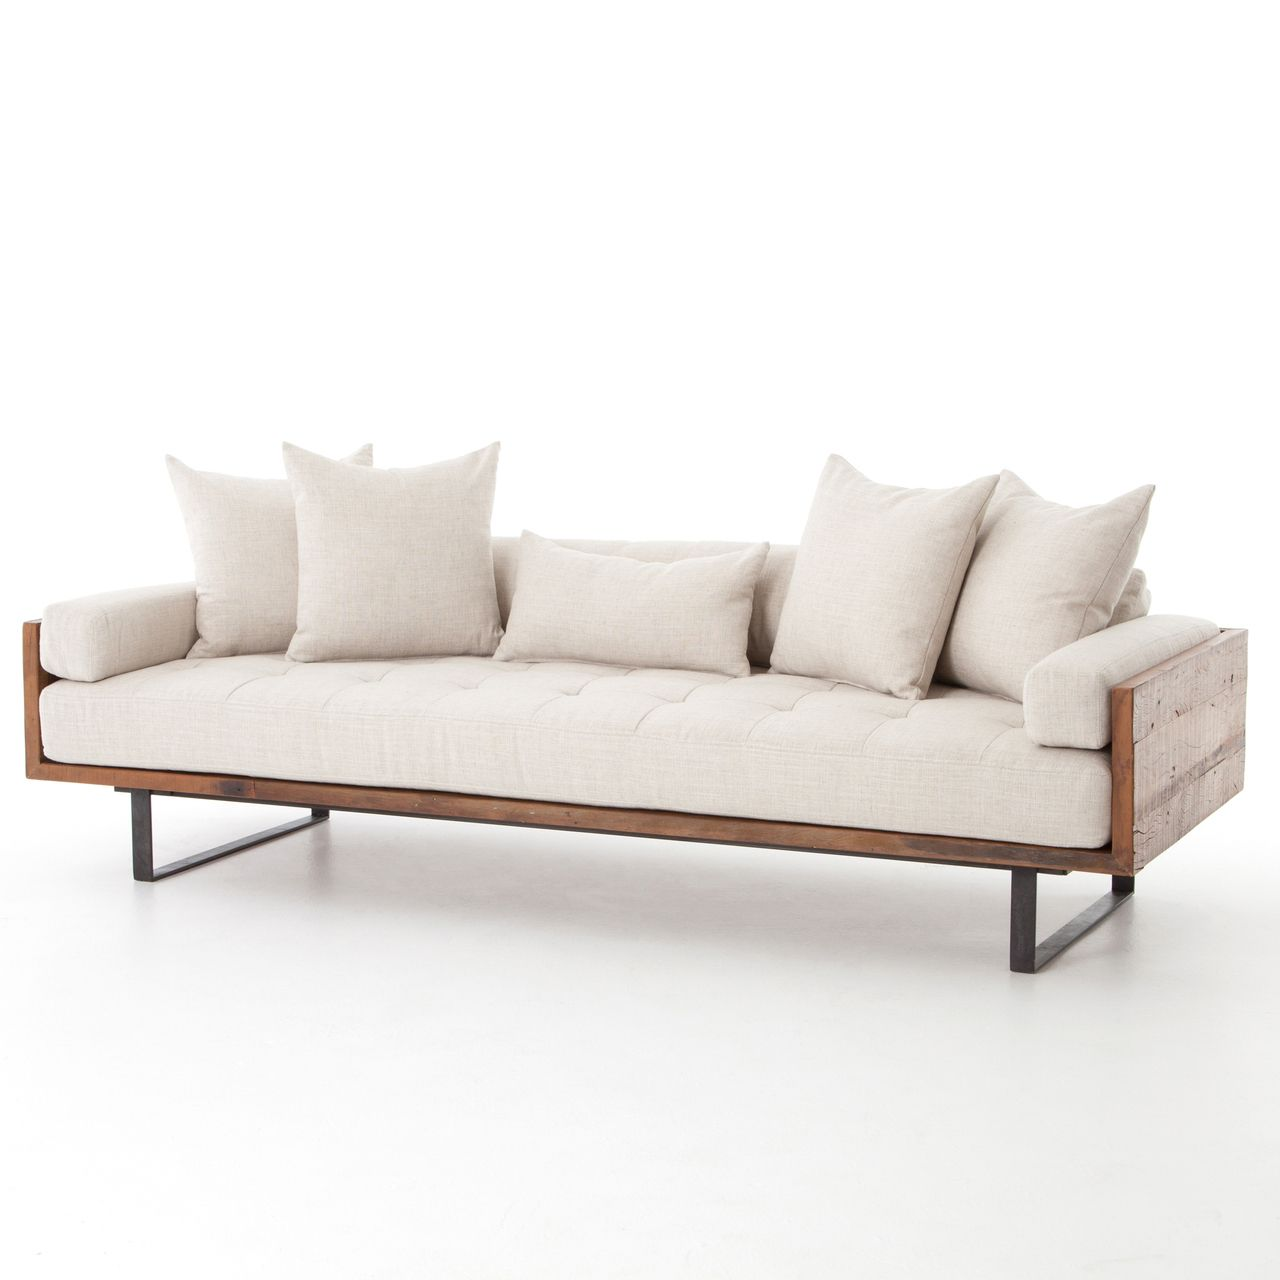 Ranger Industrial Loft Reclaimed Wood Sofa | Pinterest | Industrial ...